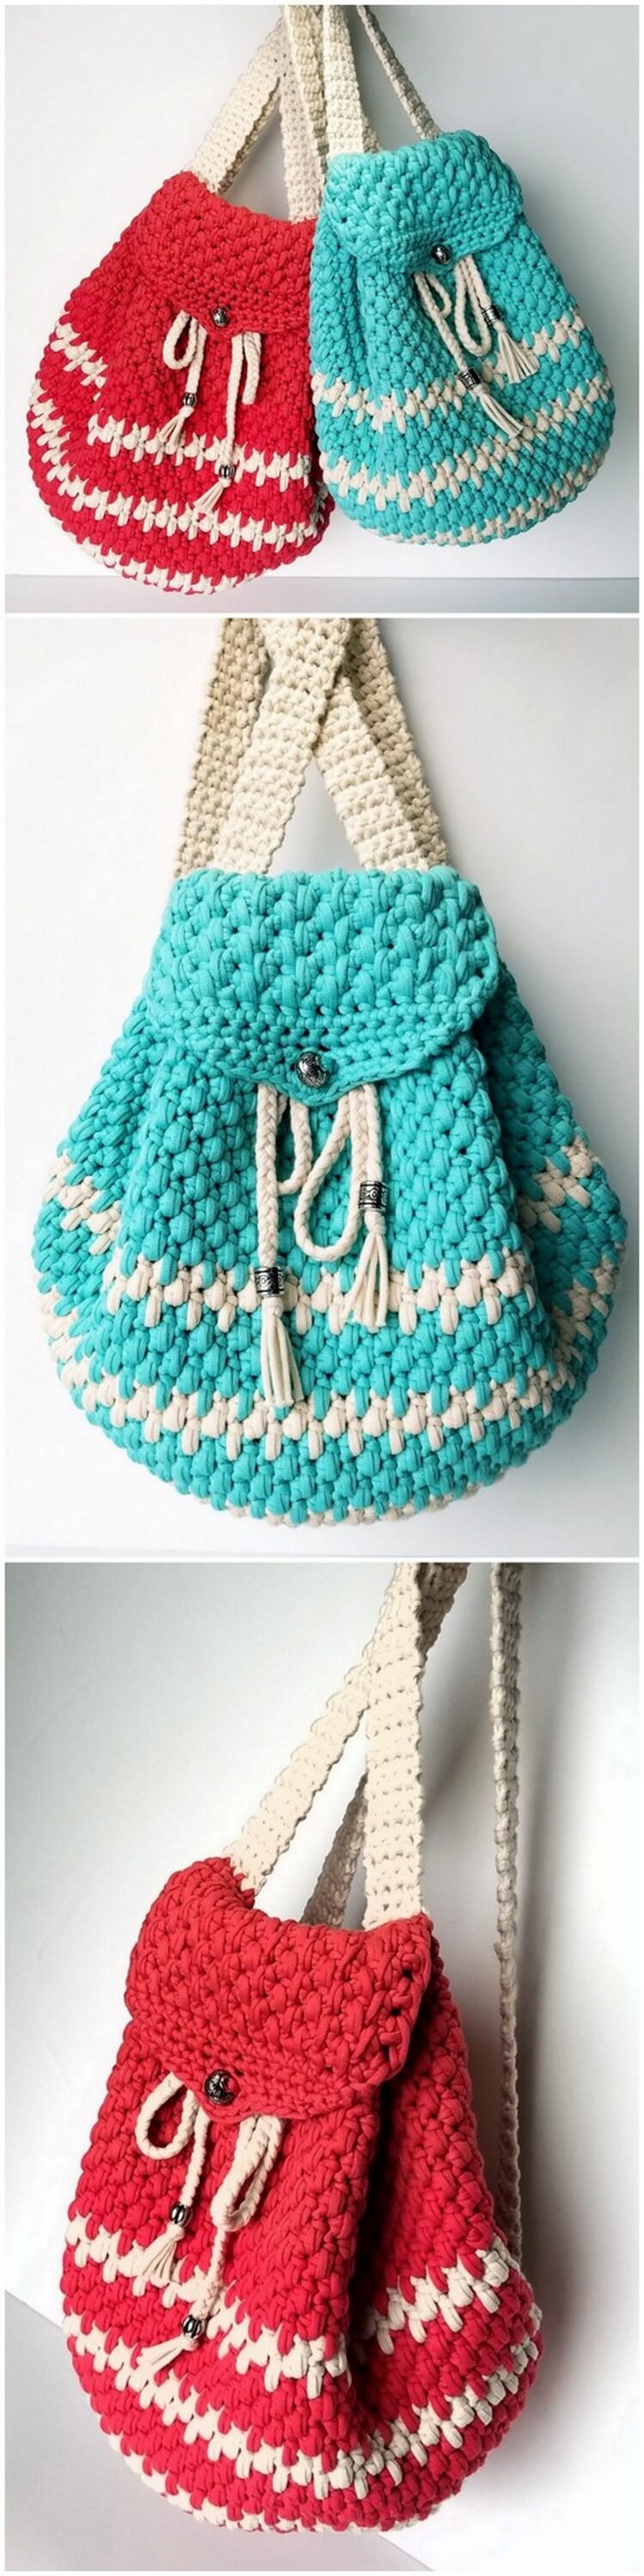 Crochet Backpack Pattern (29)